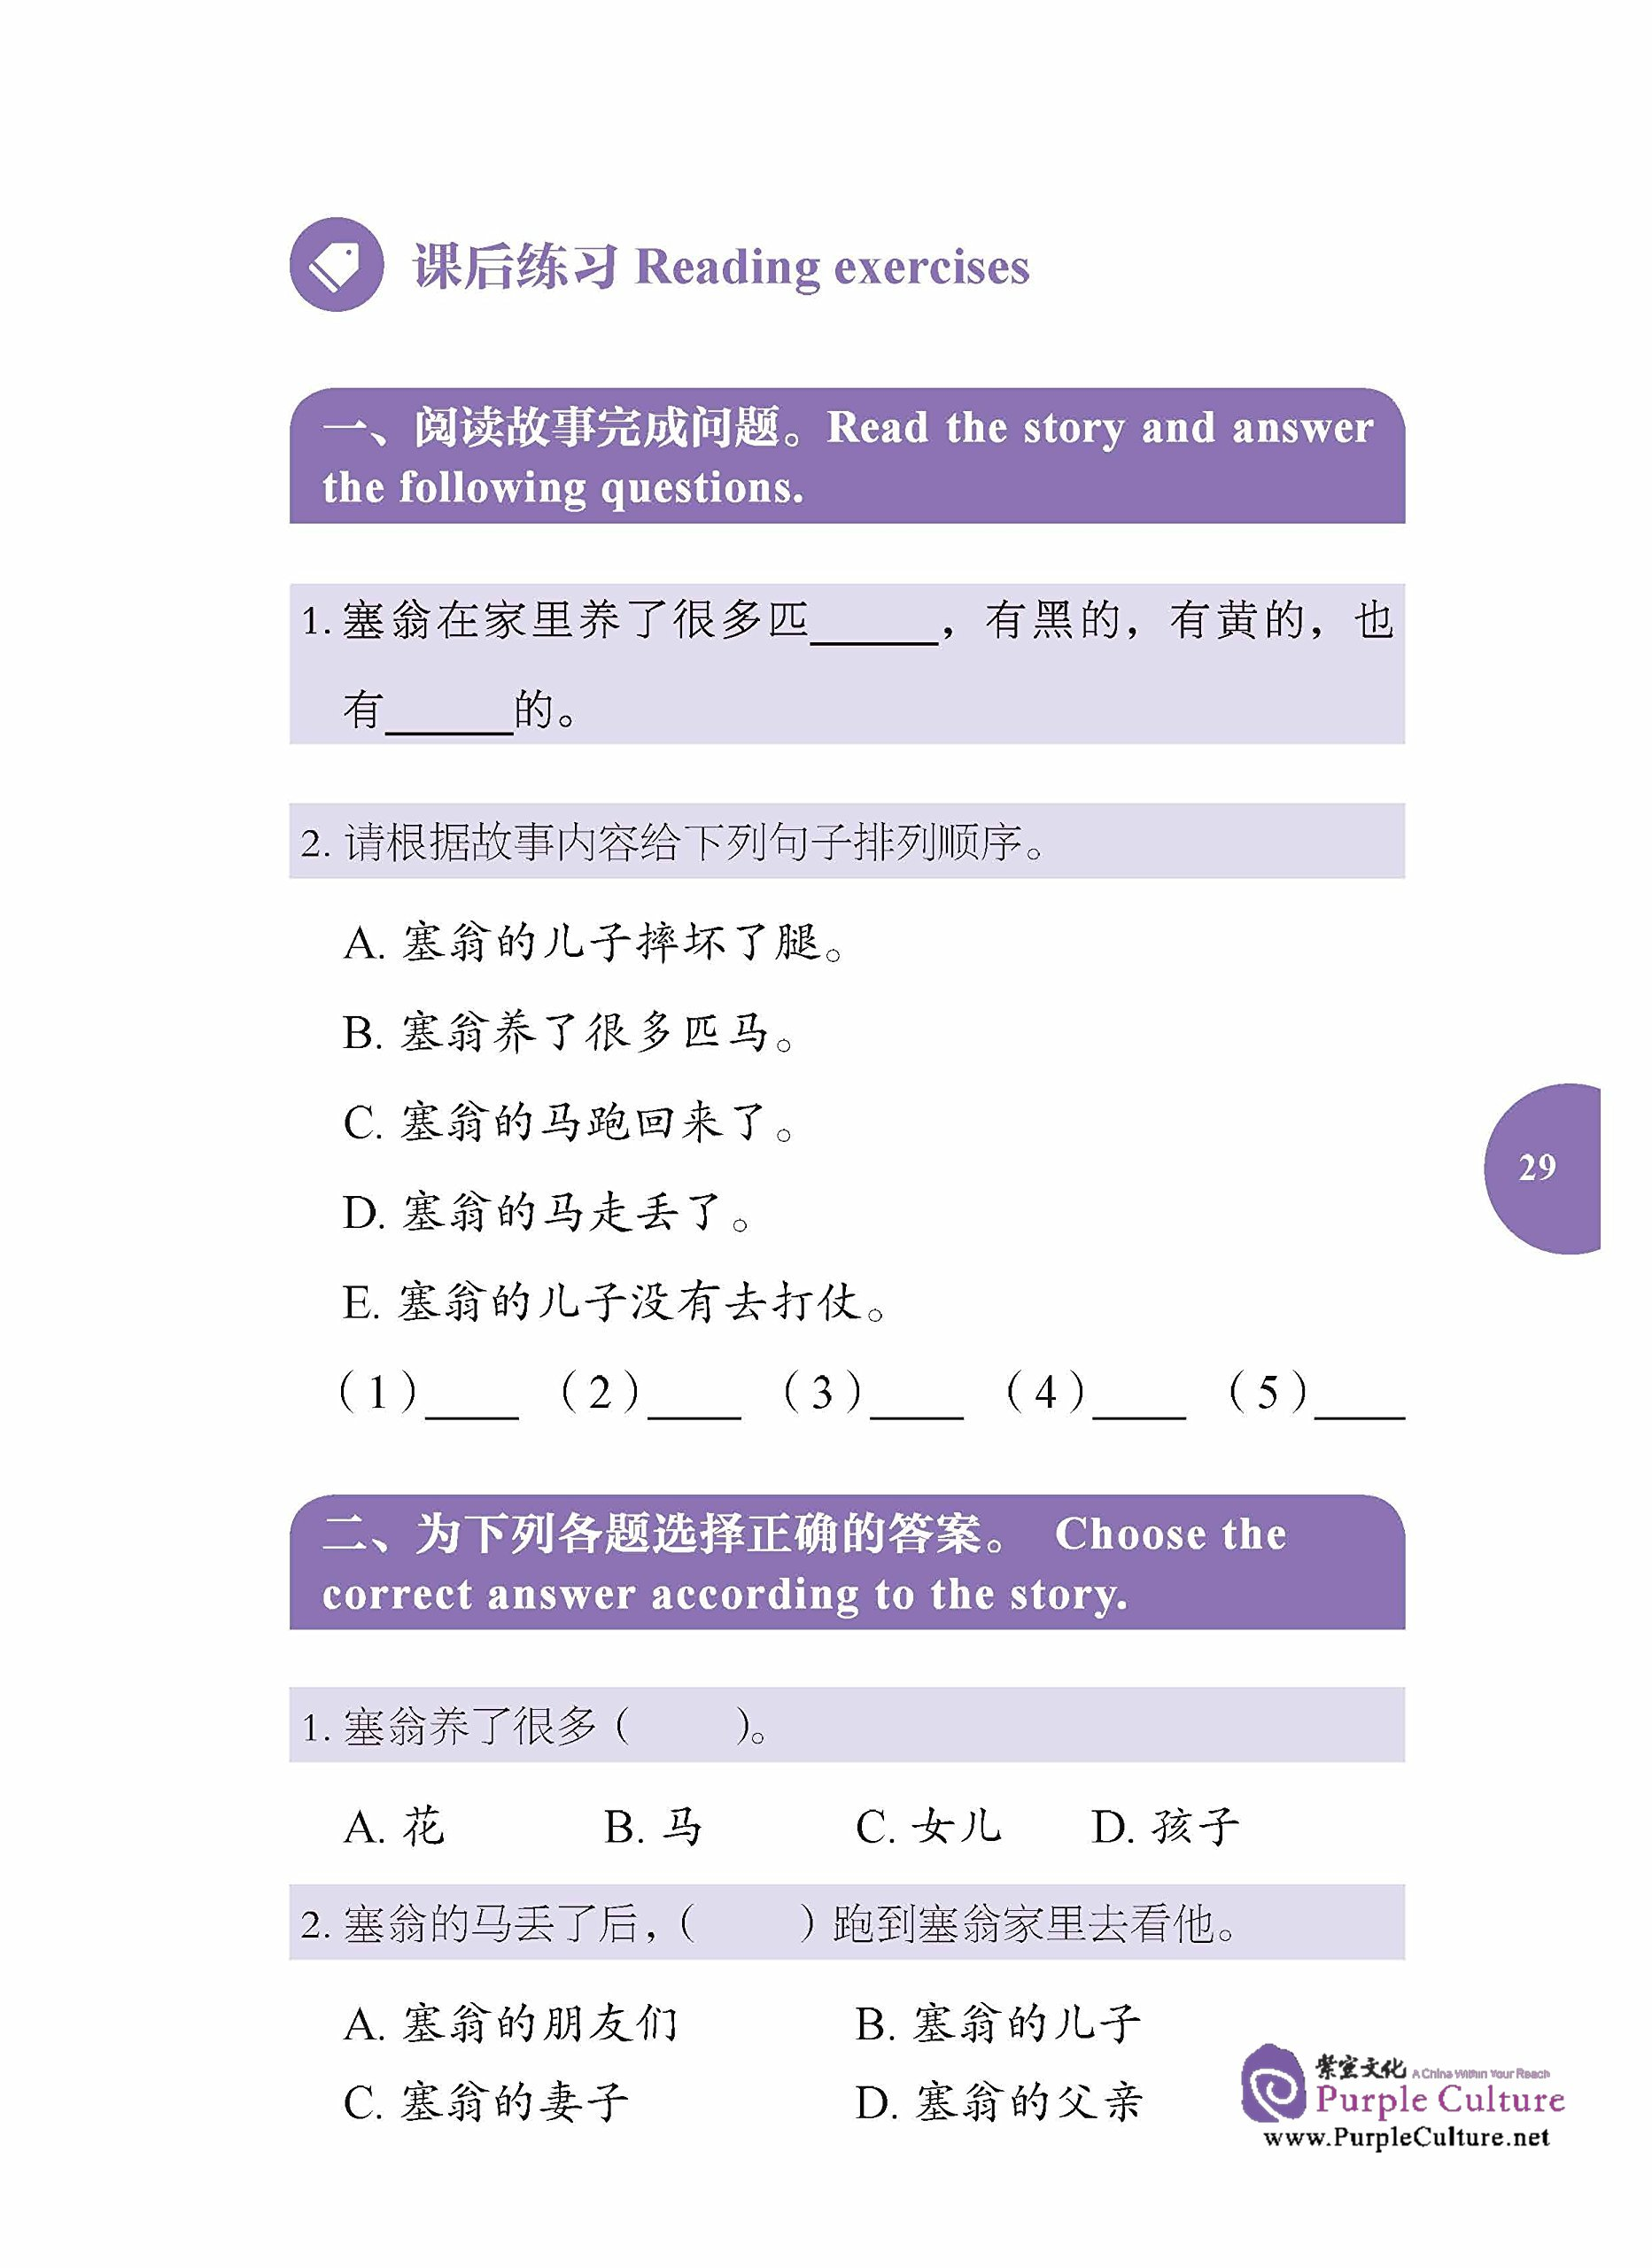 Sample pages of Rainbow Bridge Graded Chinese Reader: Starter: 150 Vocabulary words: Old Frontiersman Losing His Horse (ISBN:7513810230, 9787513810234)